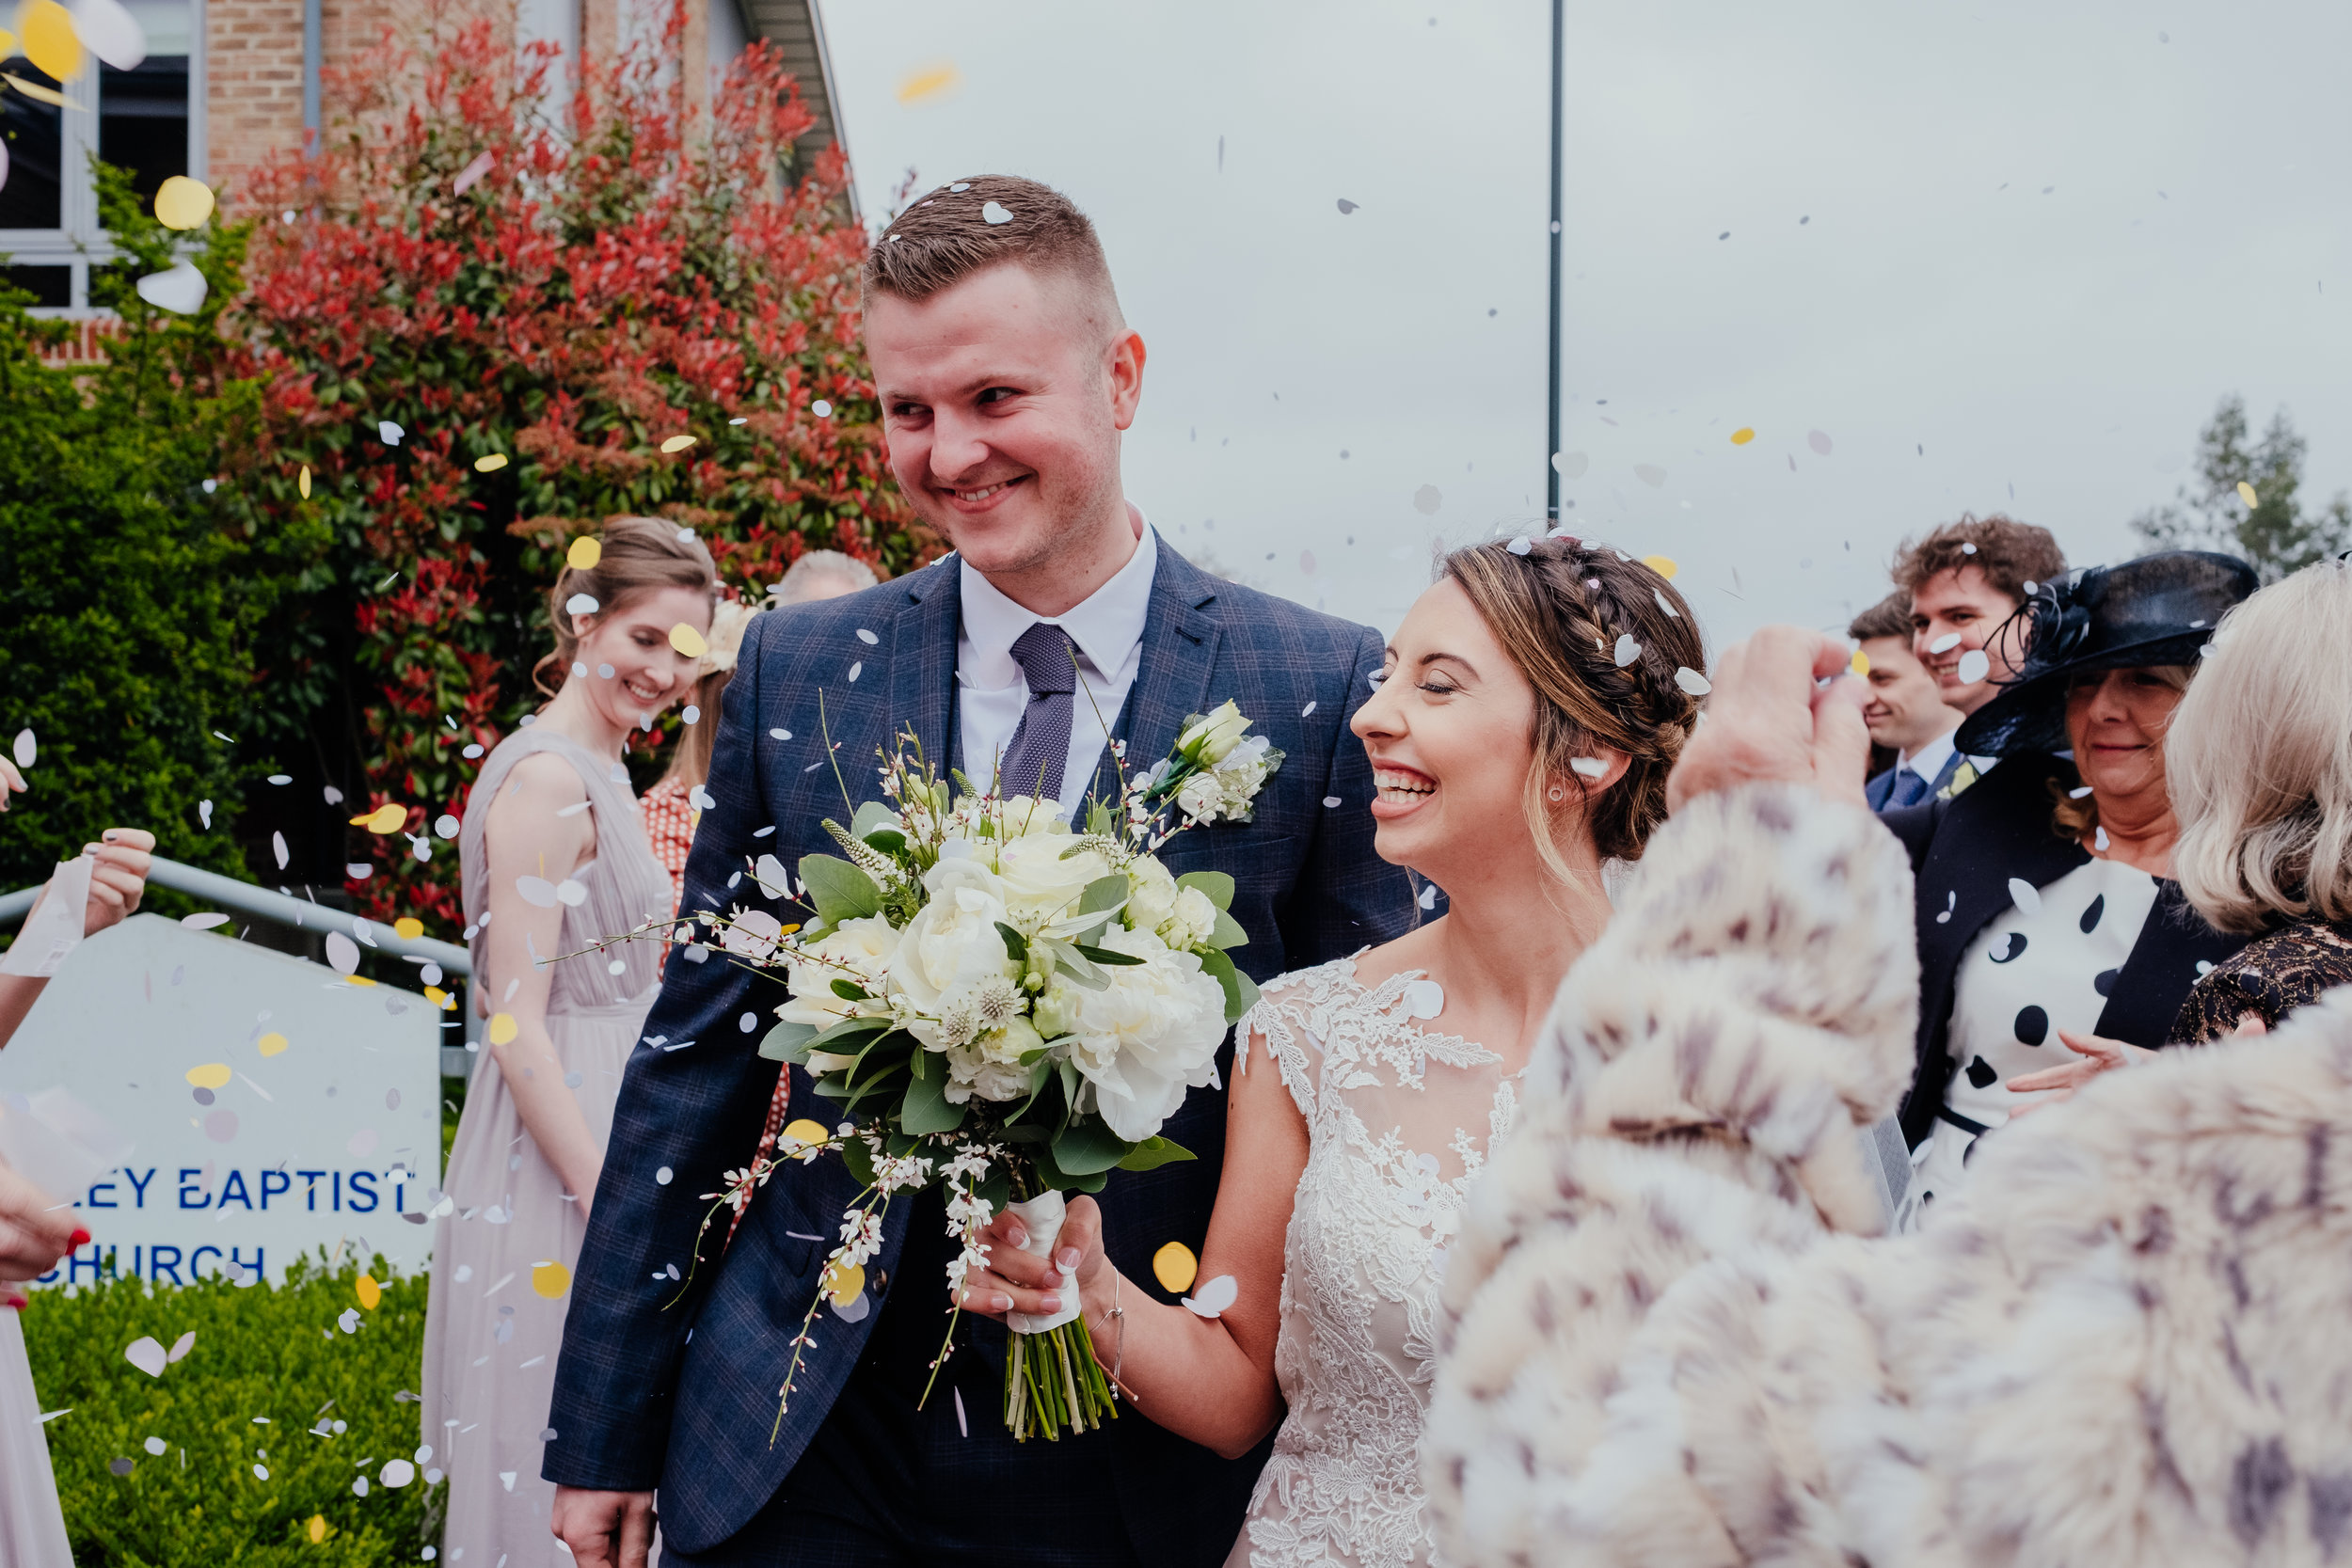 Bride and Groom smile as guests throw confetti